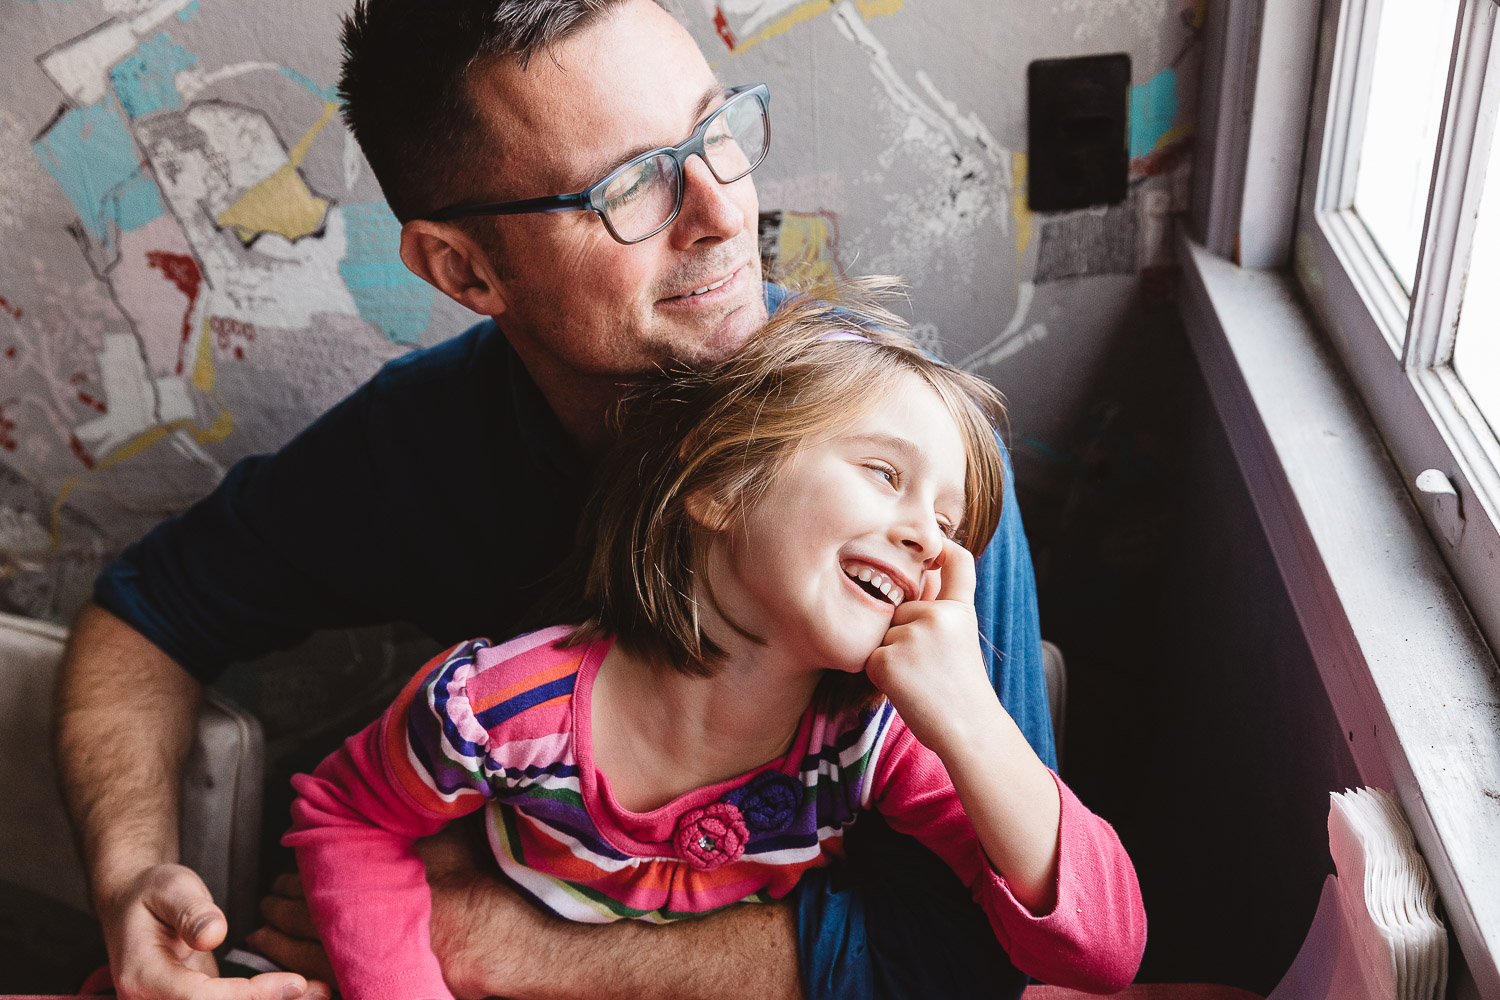 father and daughter snuggling near window smiling